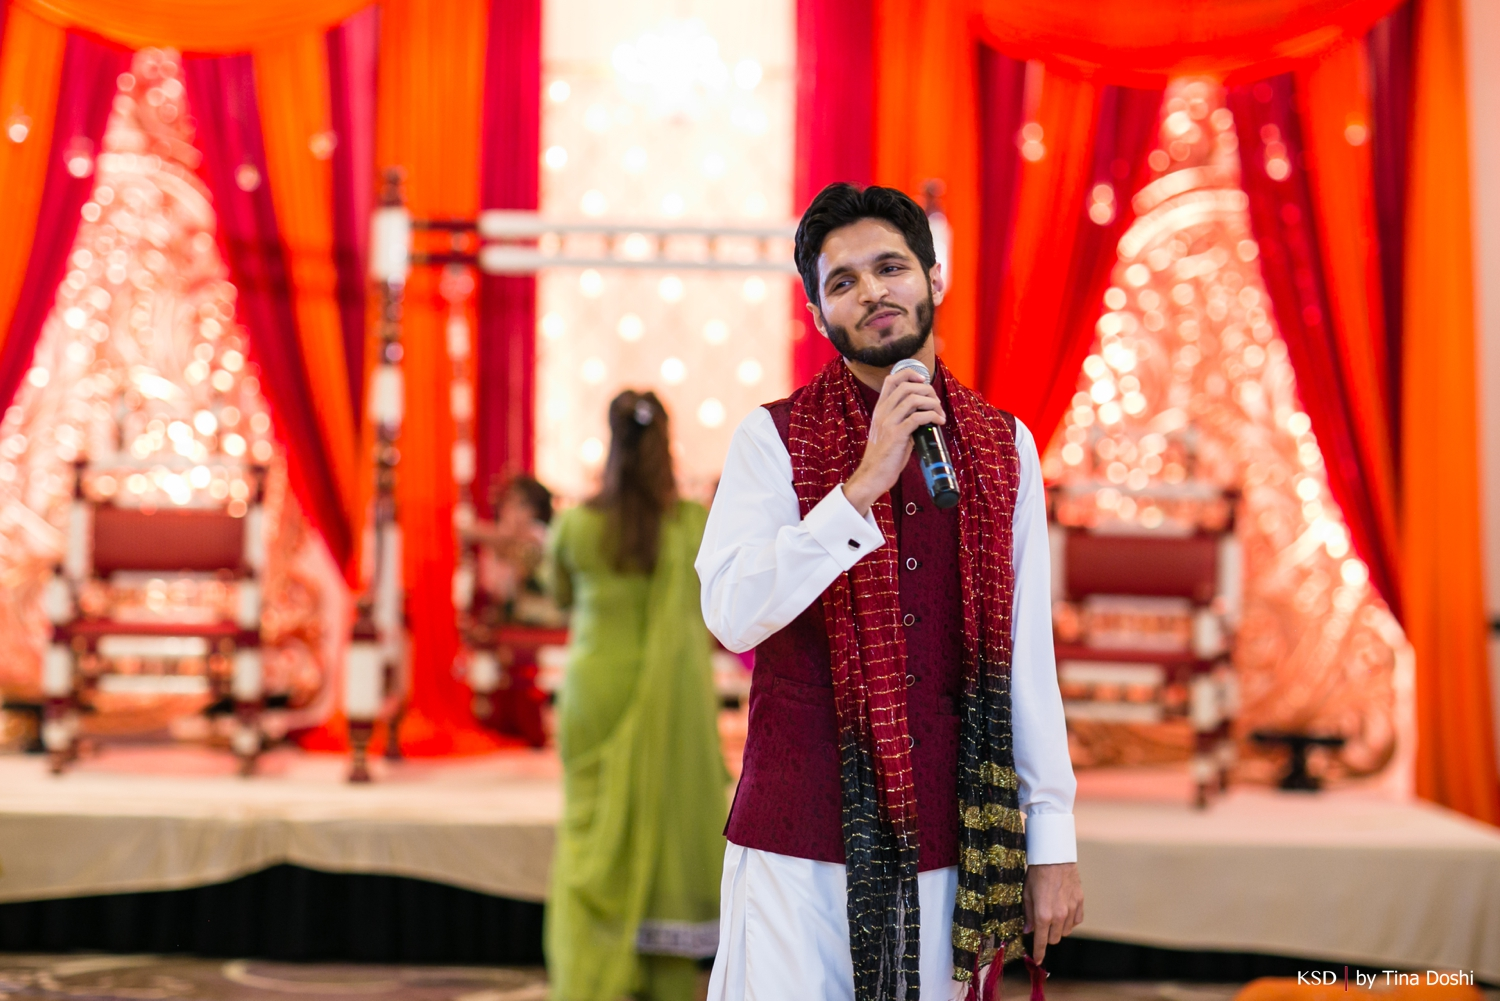 nj_south_asian_wedding_0048